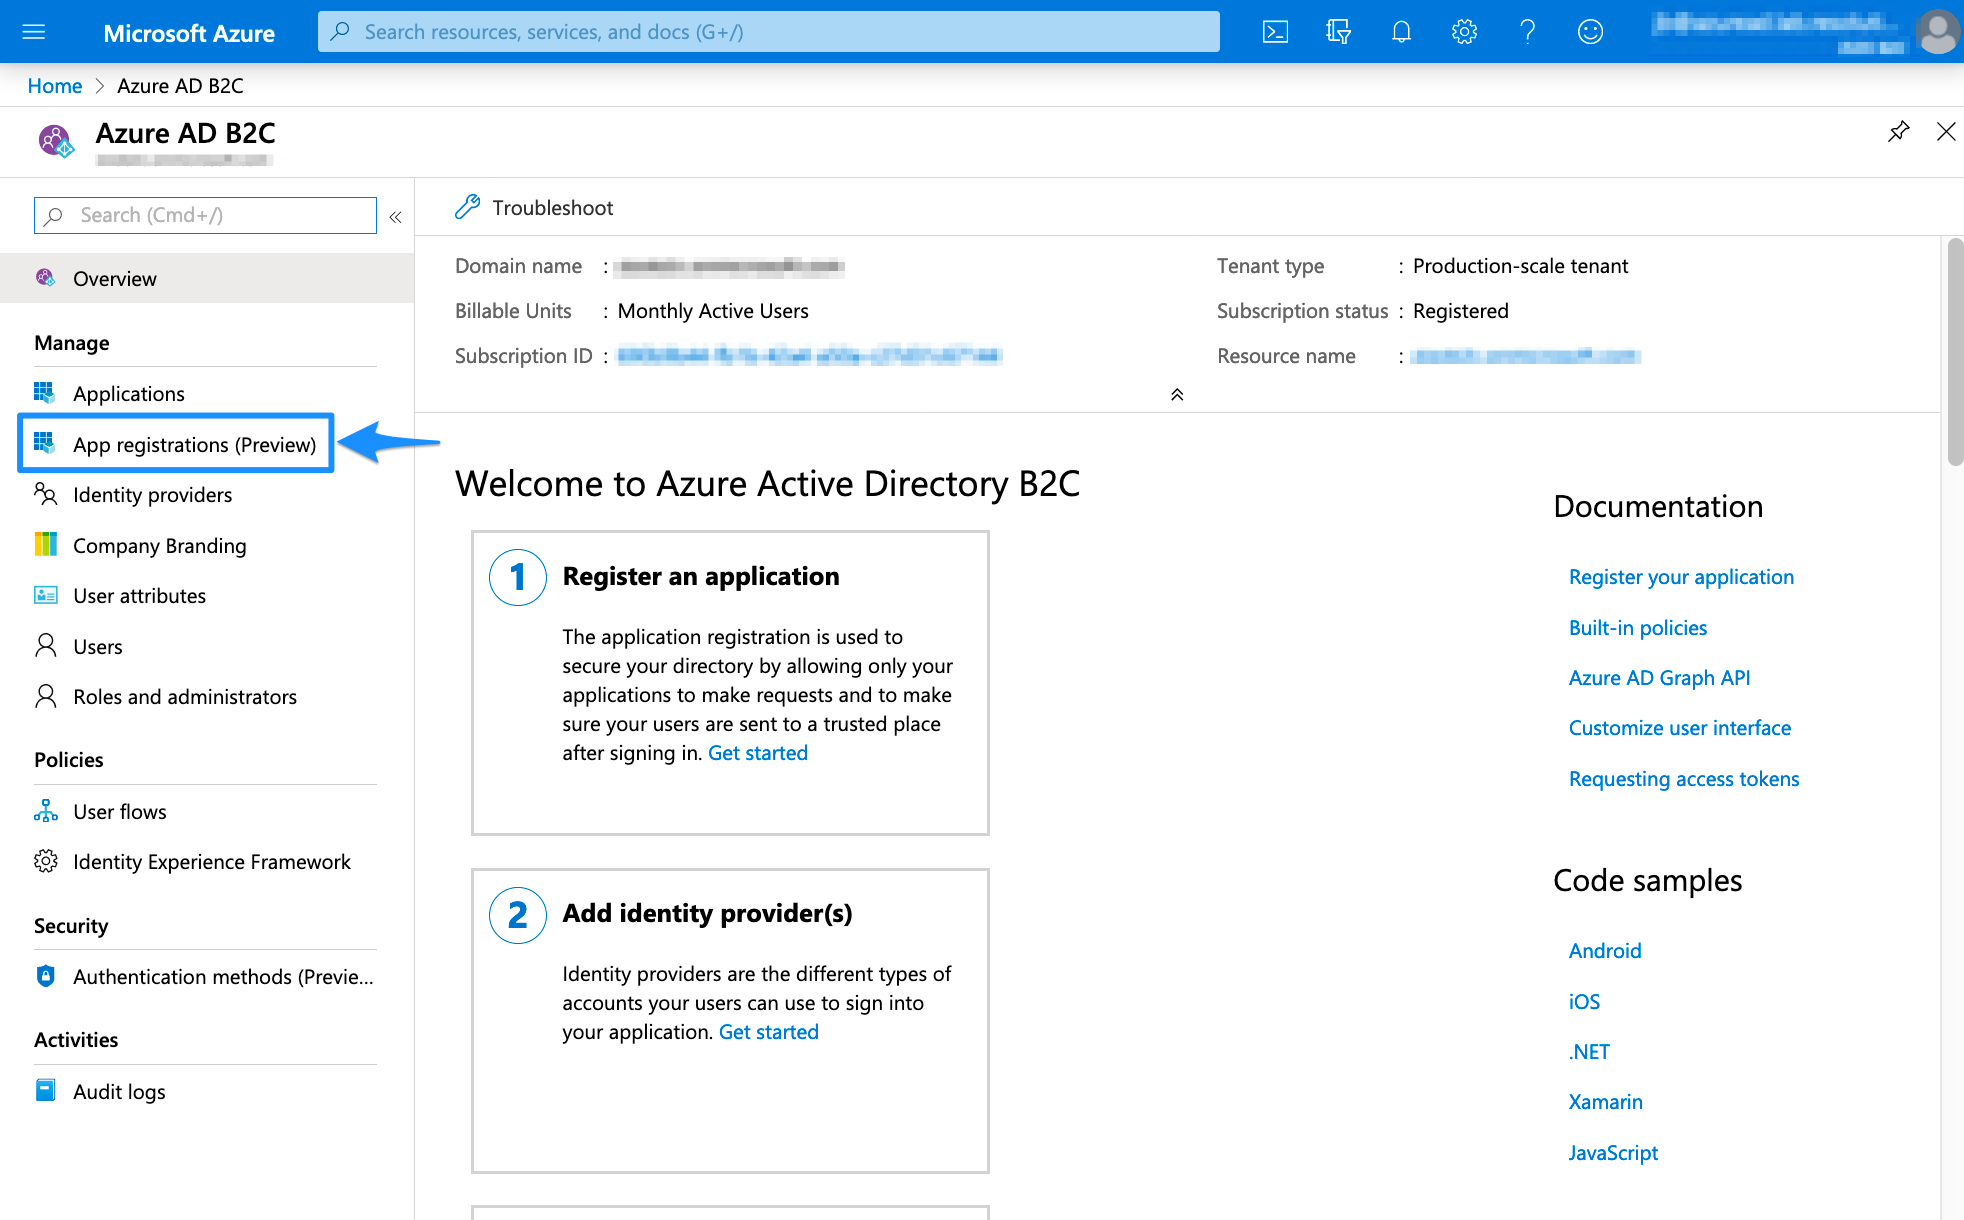 Azure AD B2C App Registration